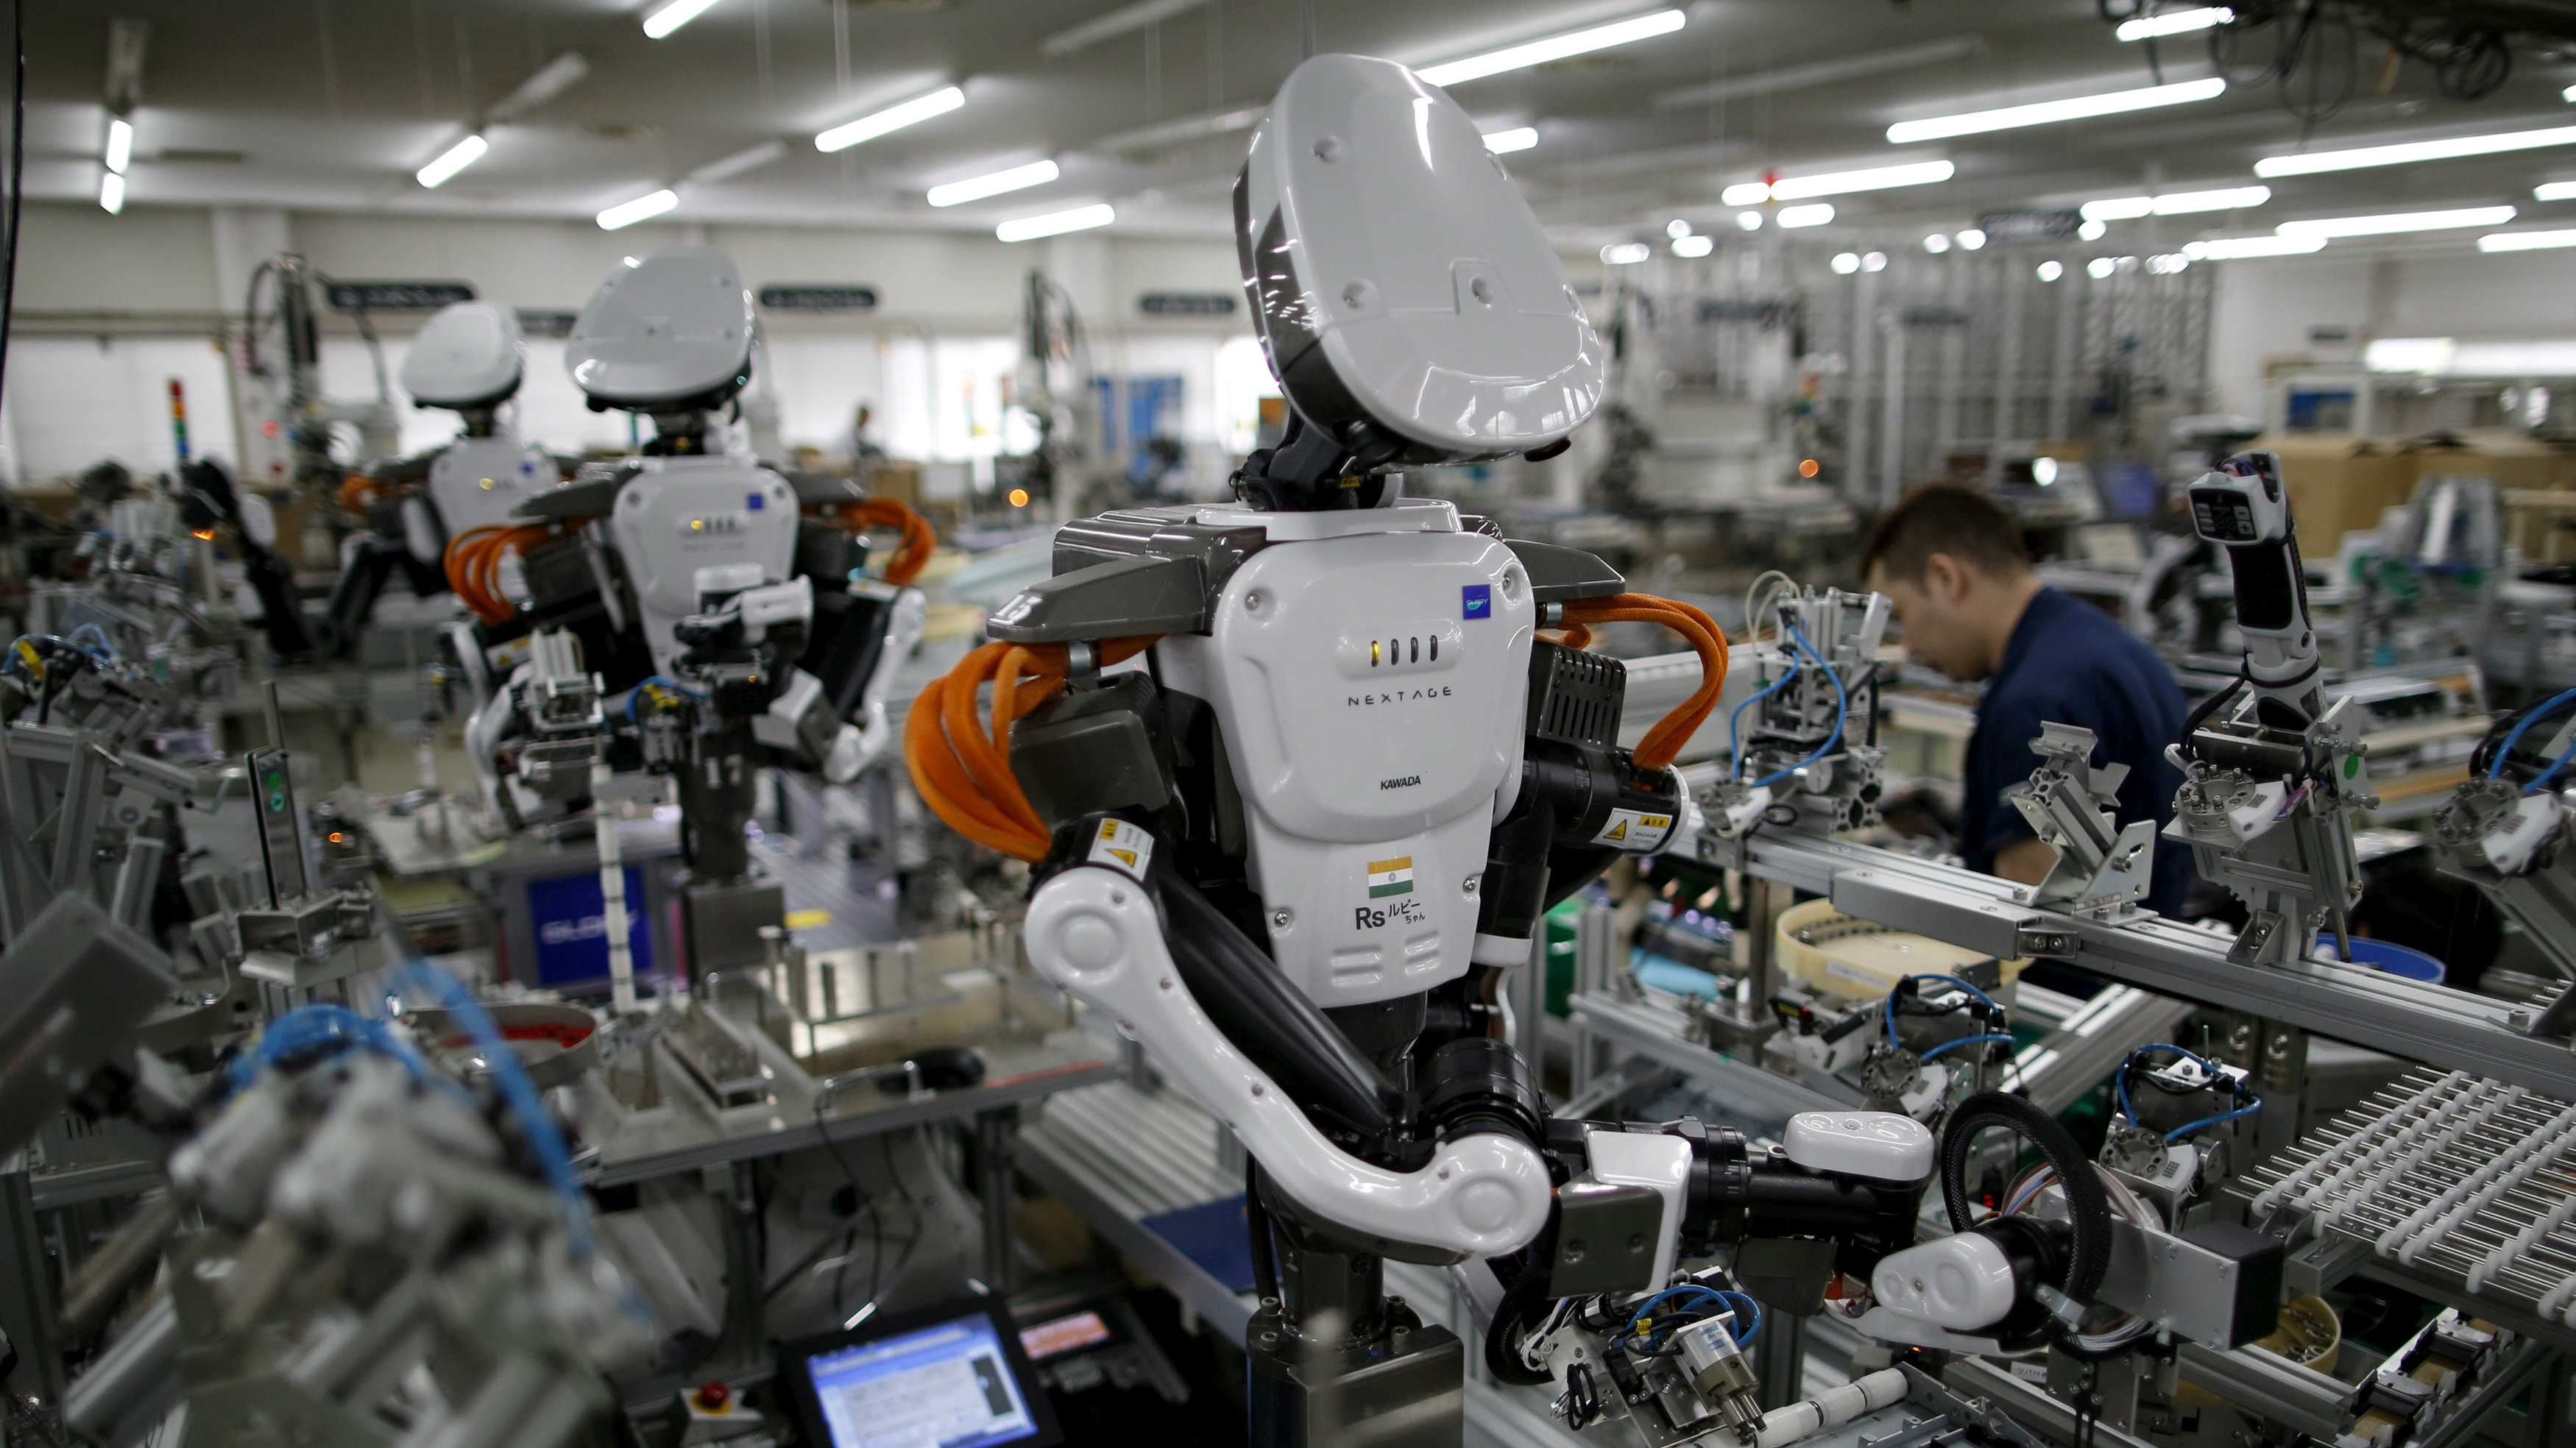 A humanoid robot working in a factory.